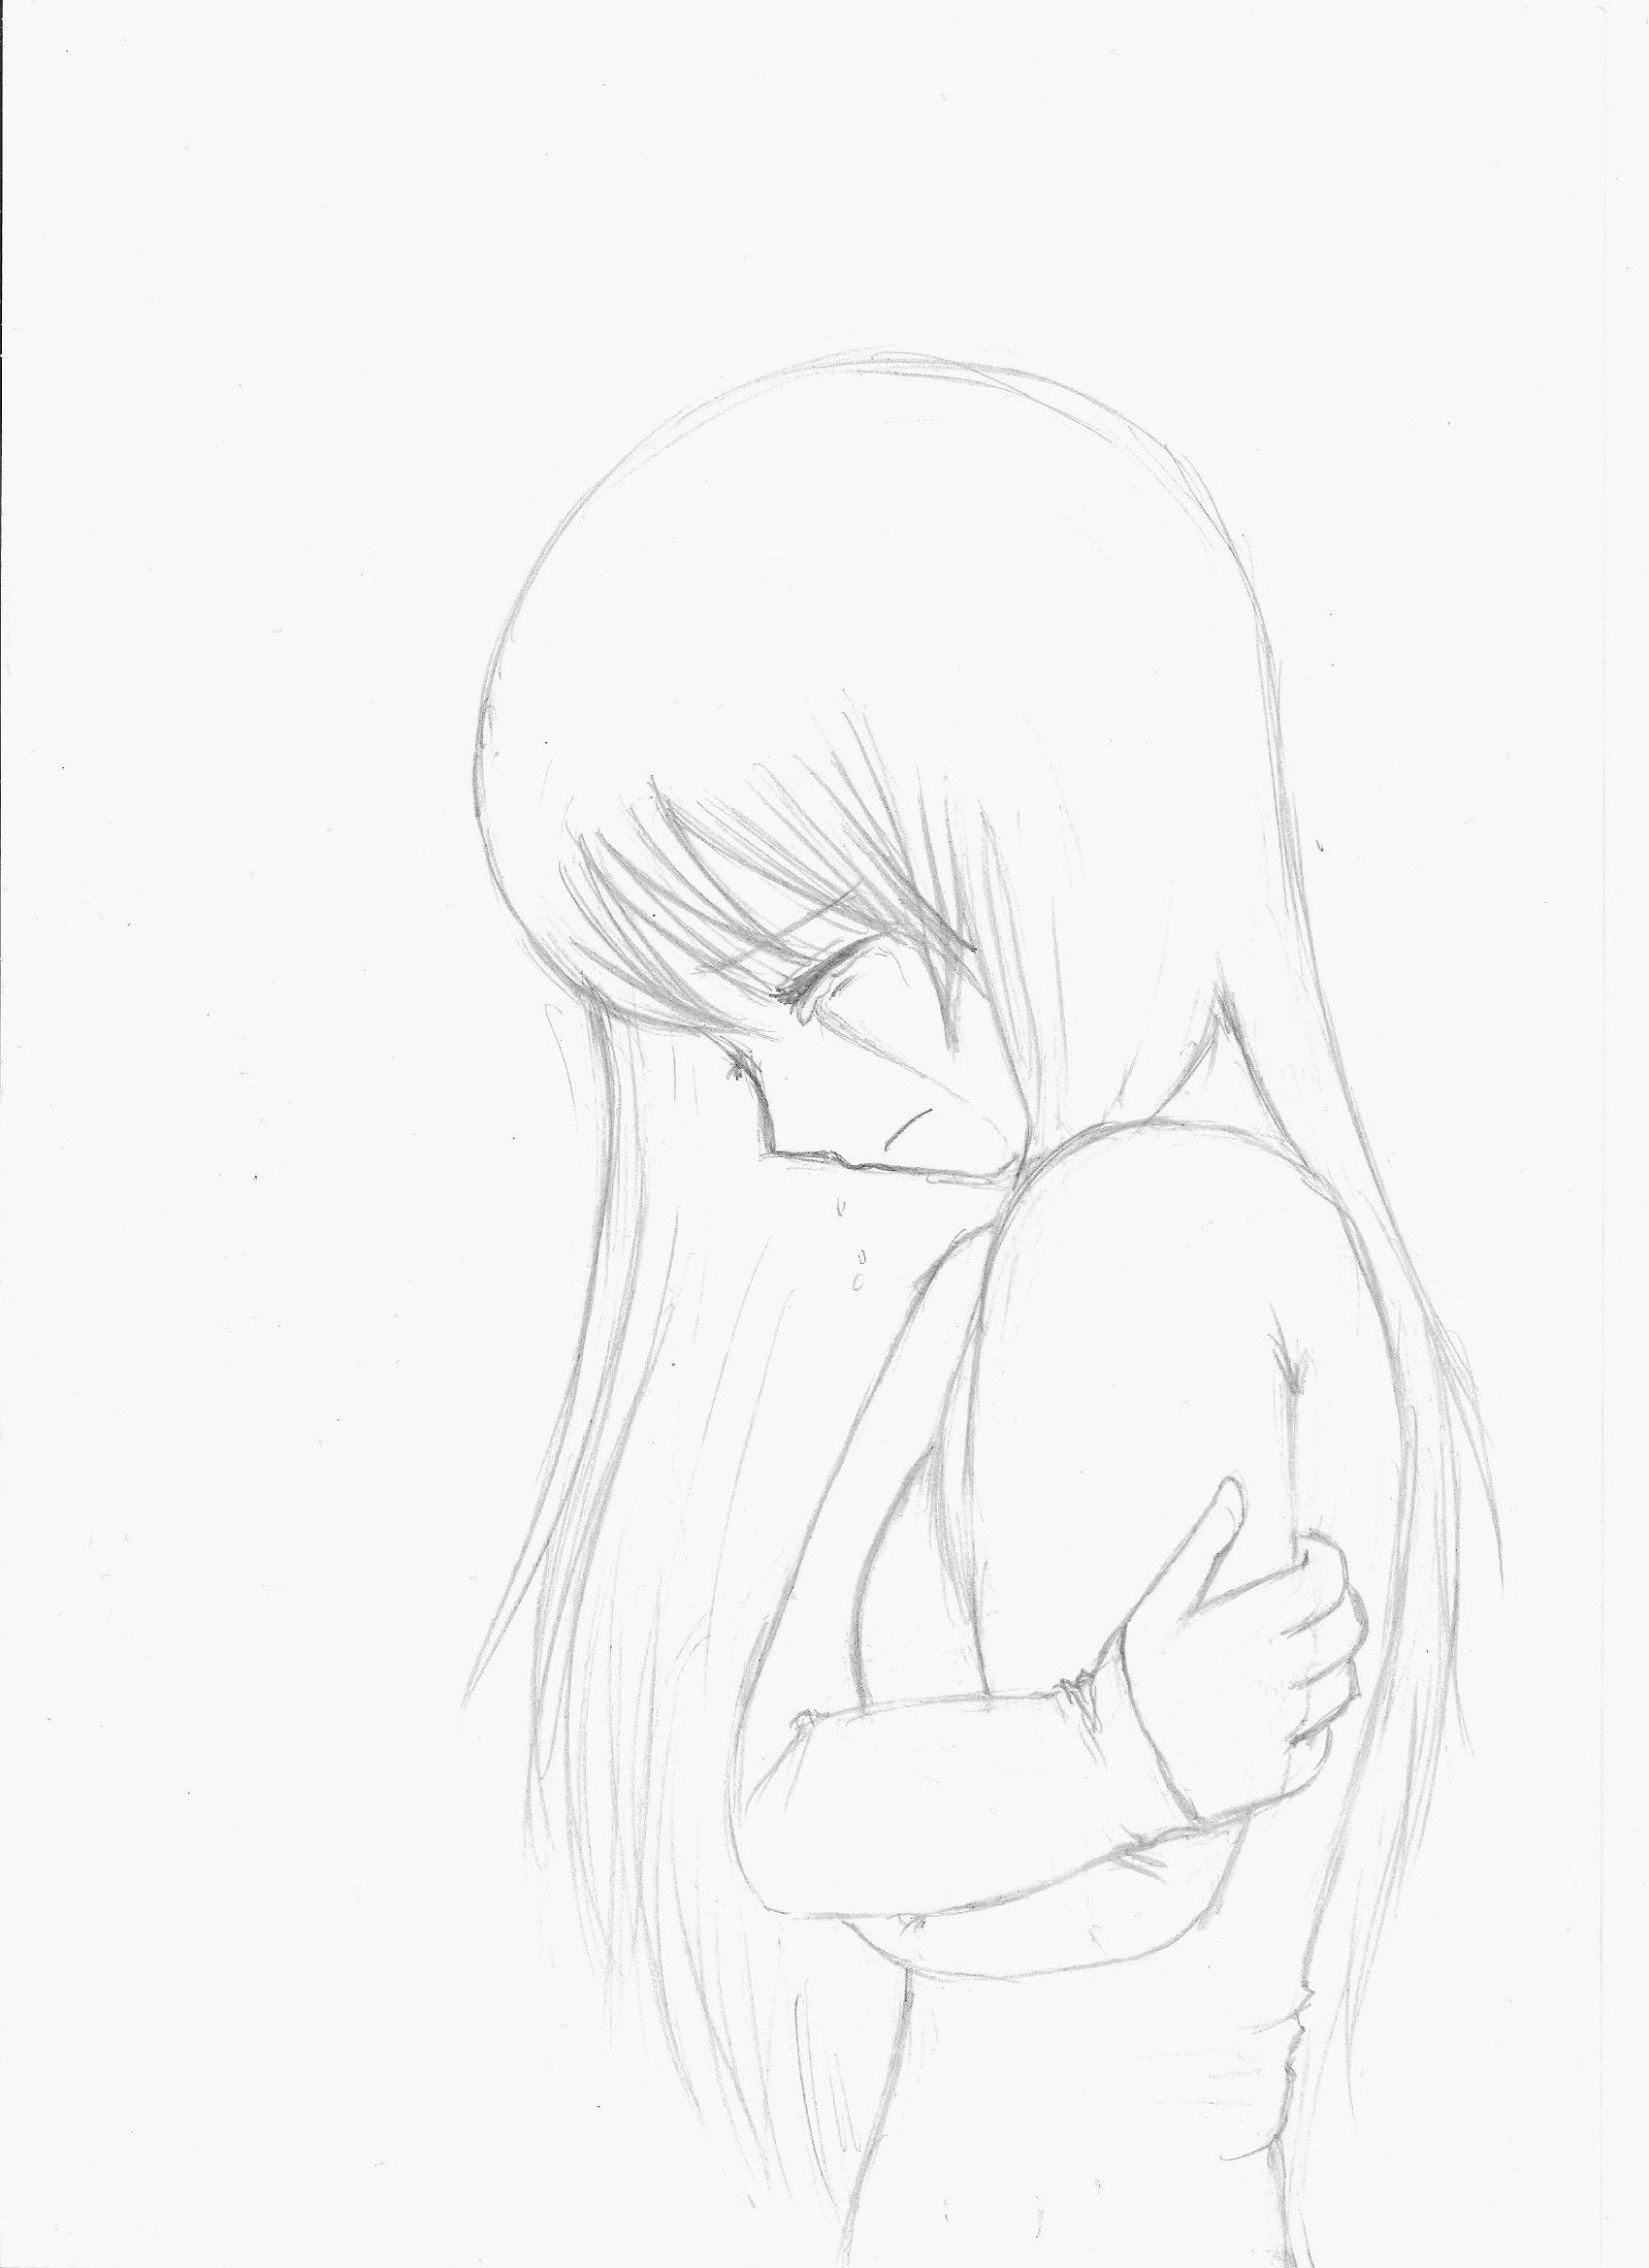 Crying anime crying anime crying girl sketch